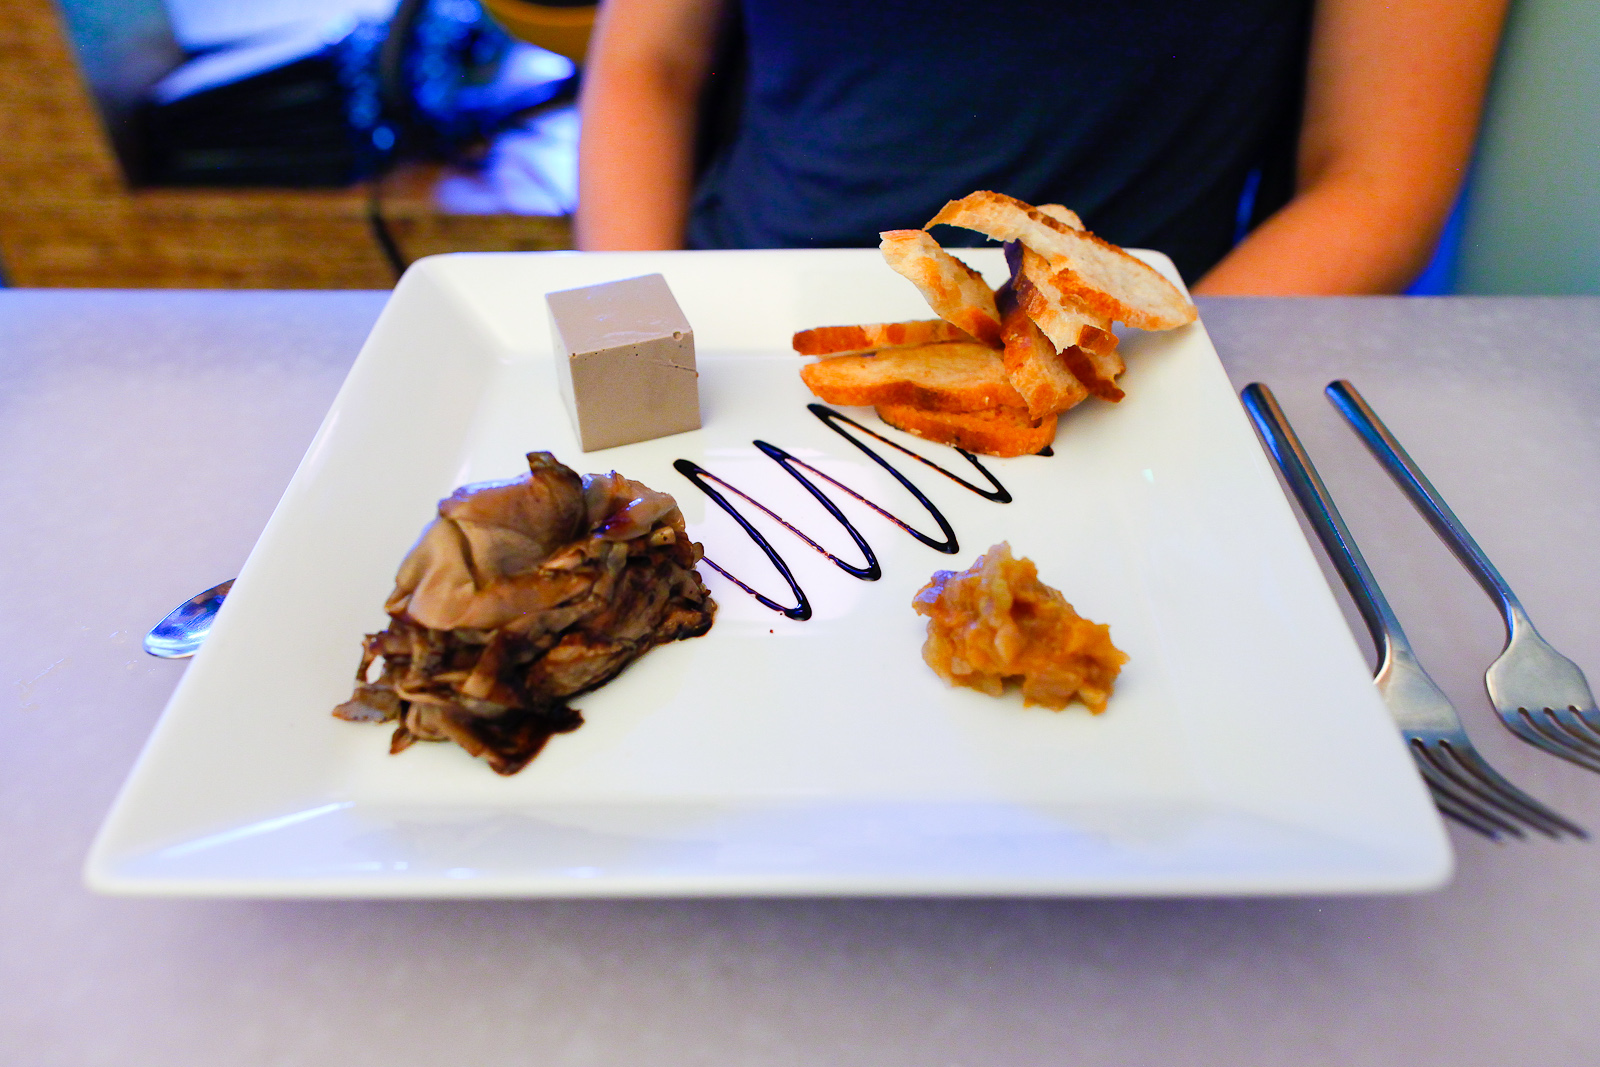 Mushroom - portobello mousse, truffled toast, pear and fennel compote ($13)